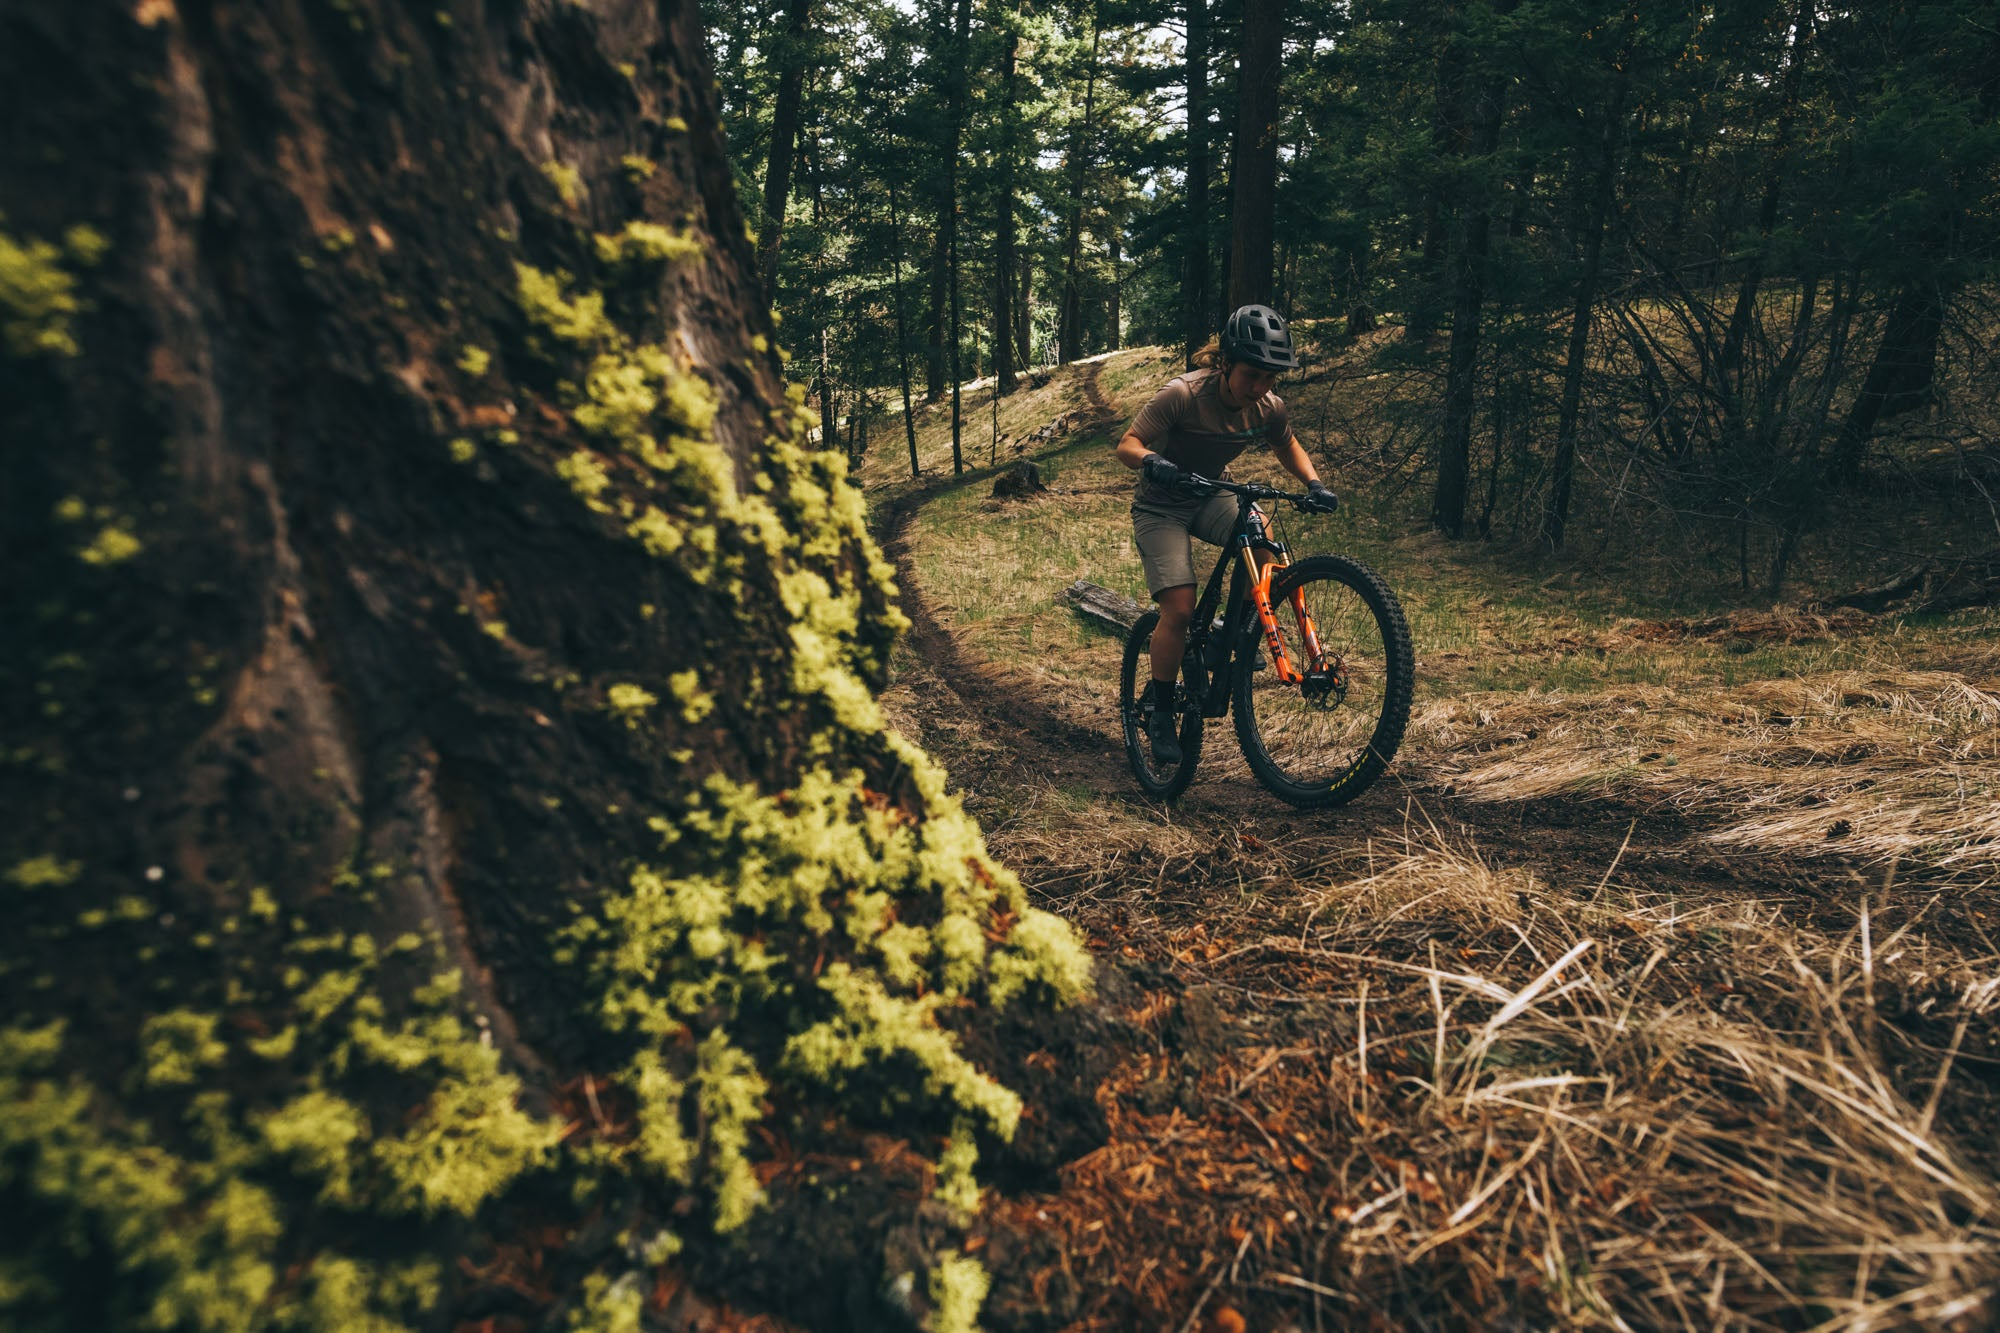 Andreane Lanthier Nadeau rides the Element in British Columbia, Canada